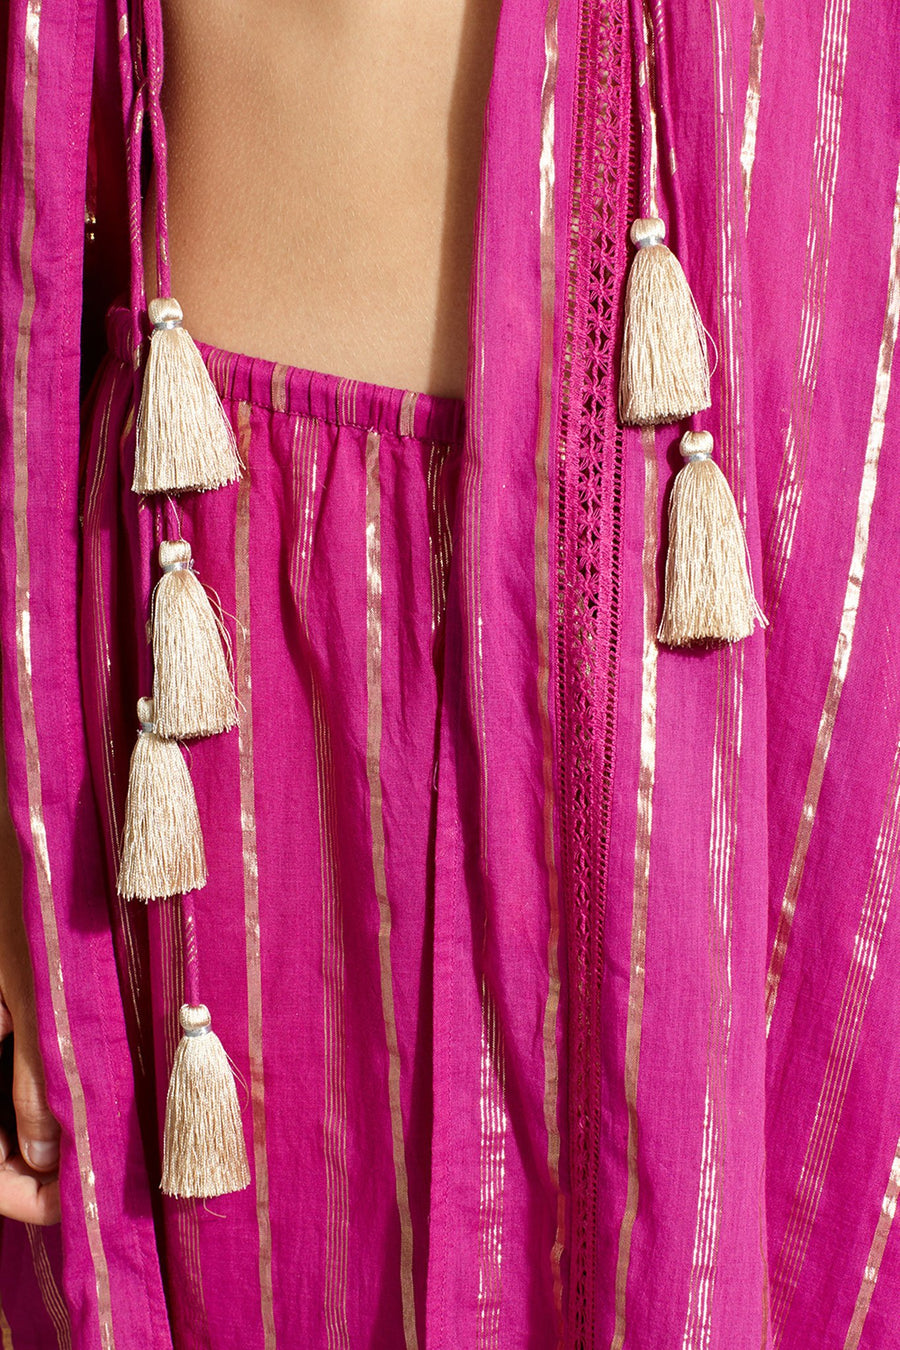 This is a detail photo of gold tassels that hang from magenta/pink colored pants and coat with gold metallic stripes.